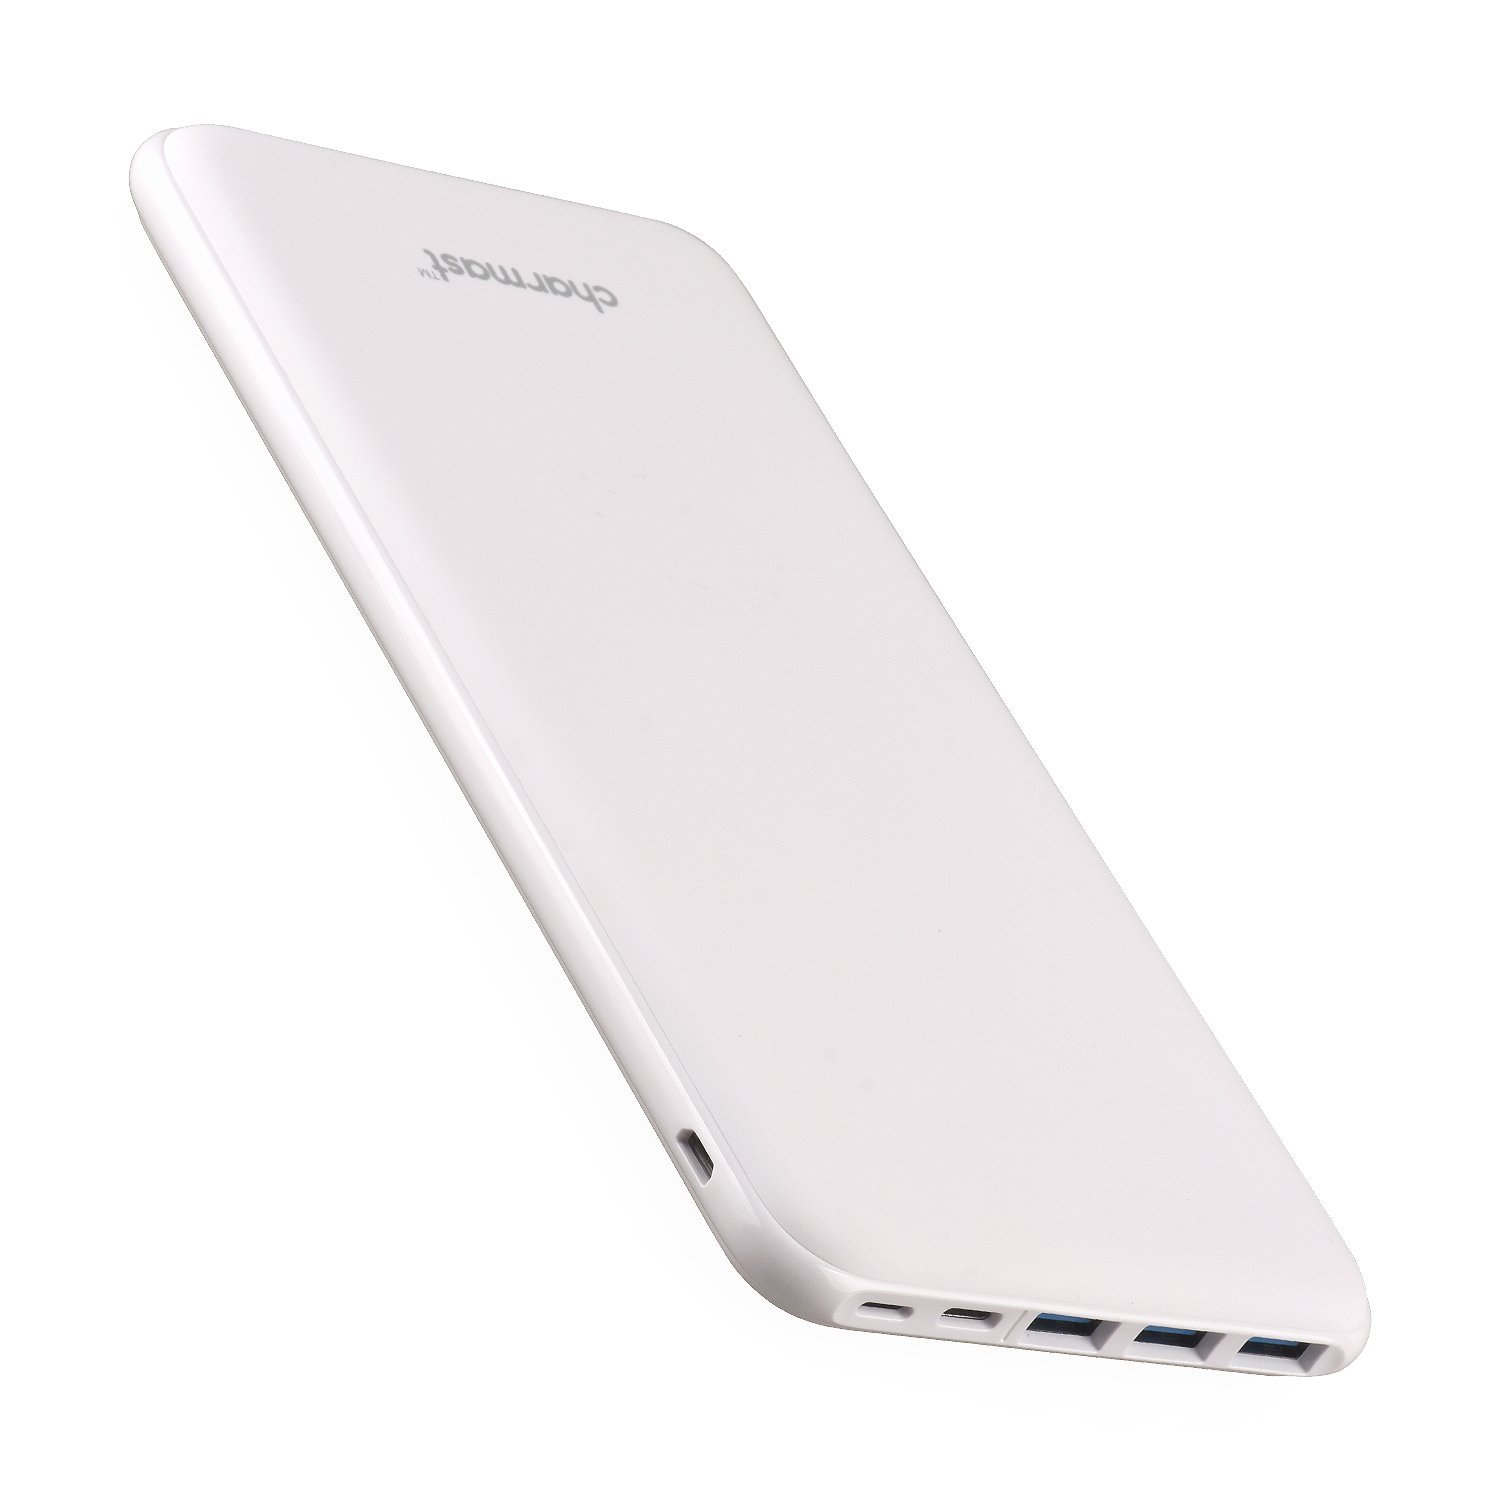 Charmast 26800mAh powerbank